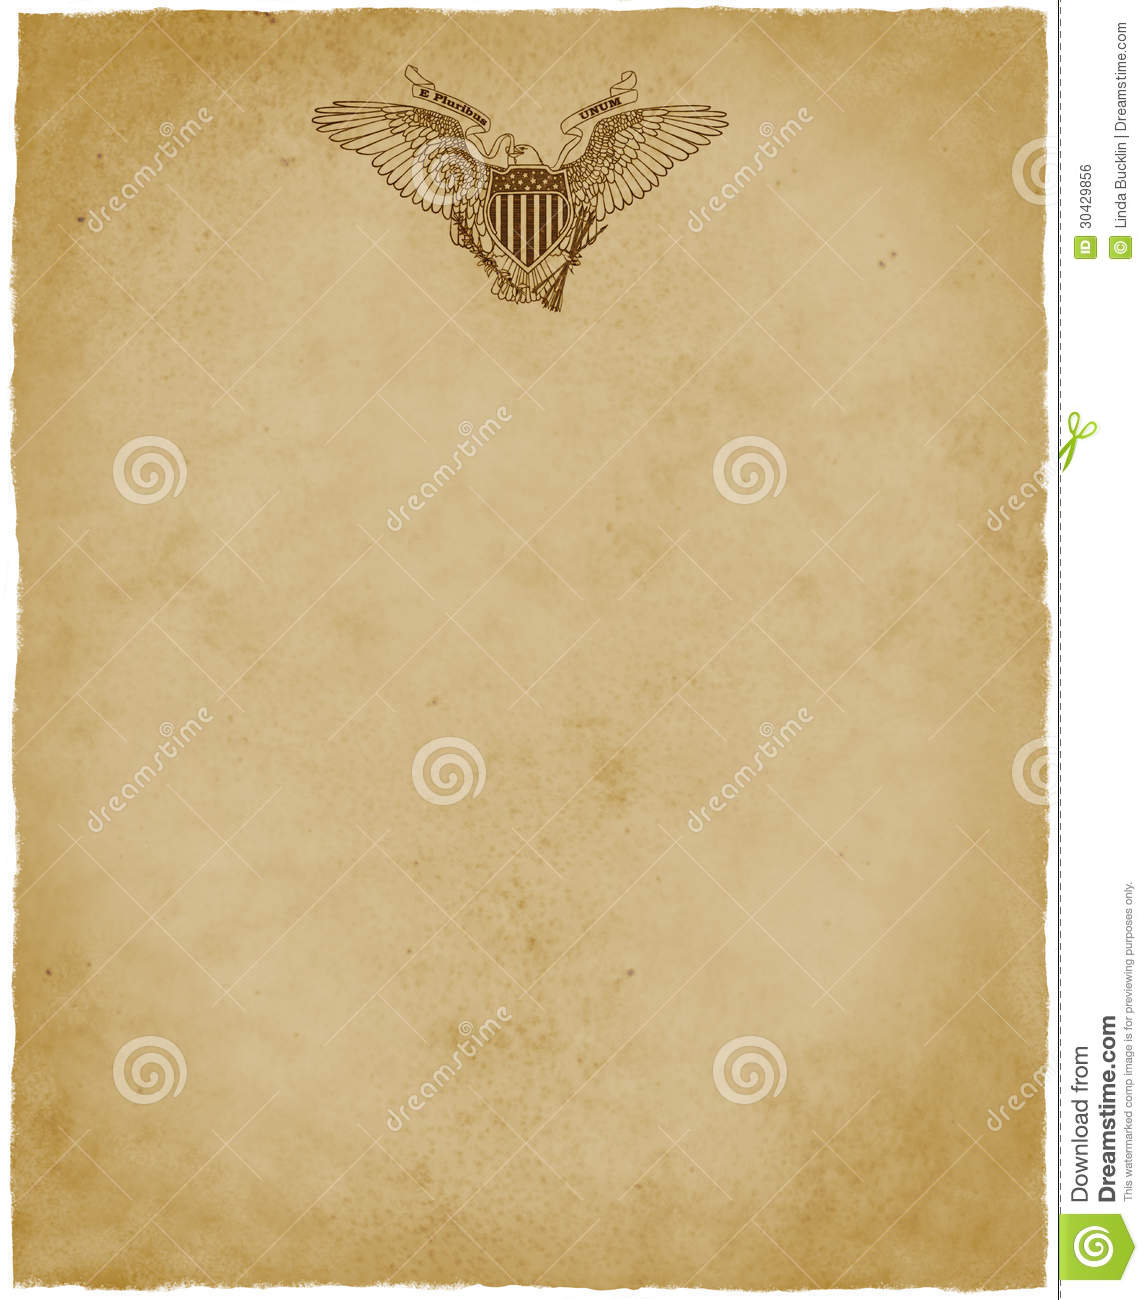 https://thumbs.dreamstime.com/z/usa-eagle-letterhead-stationery-great-seal-centered-top-sheet-aged-parchment-paper-digital-image-30429856.jpg